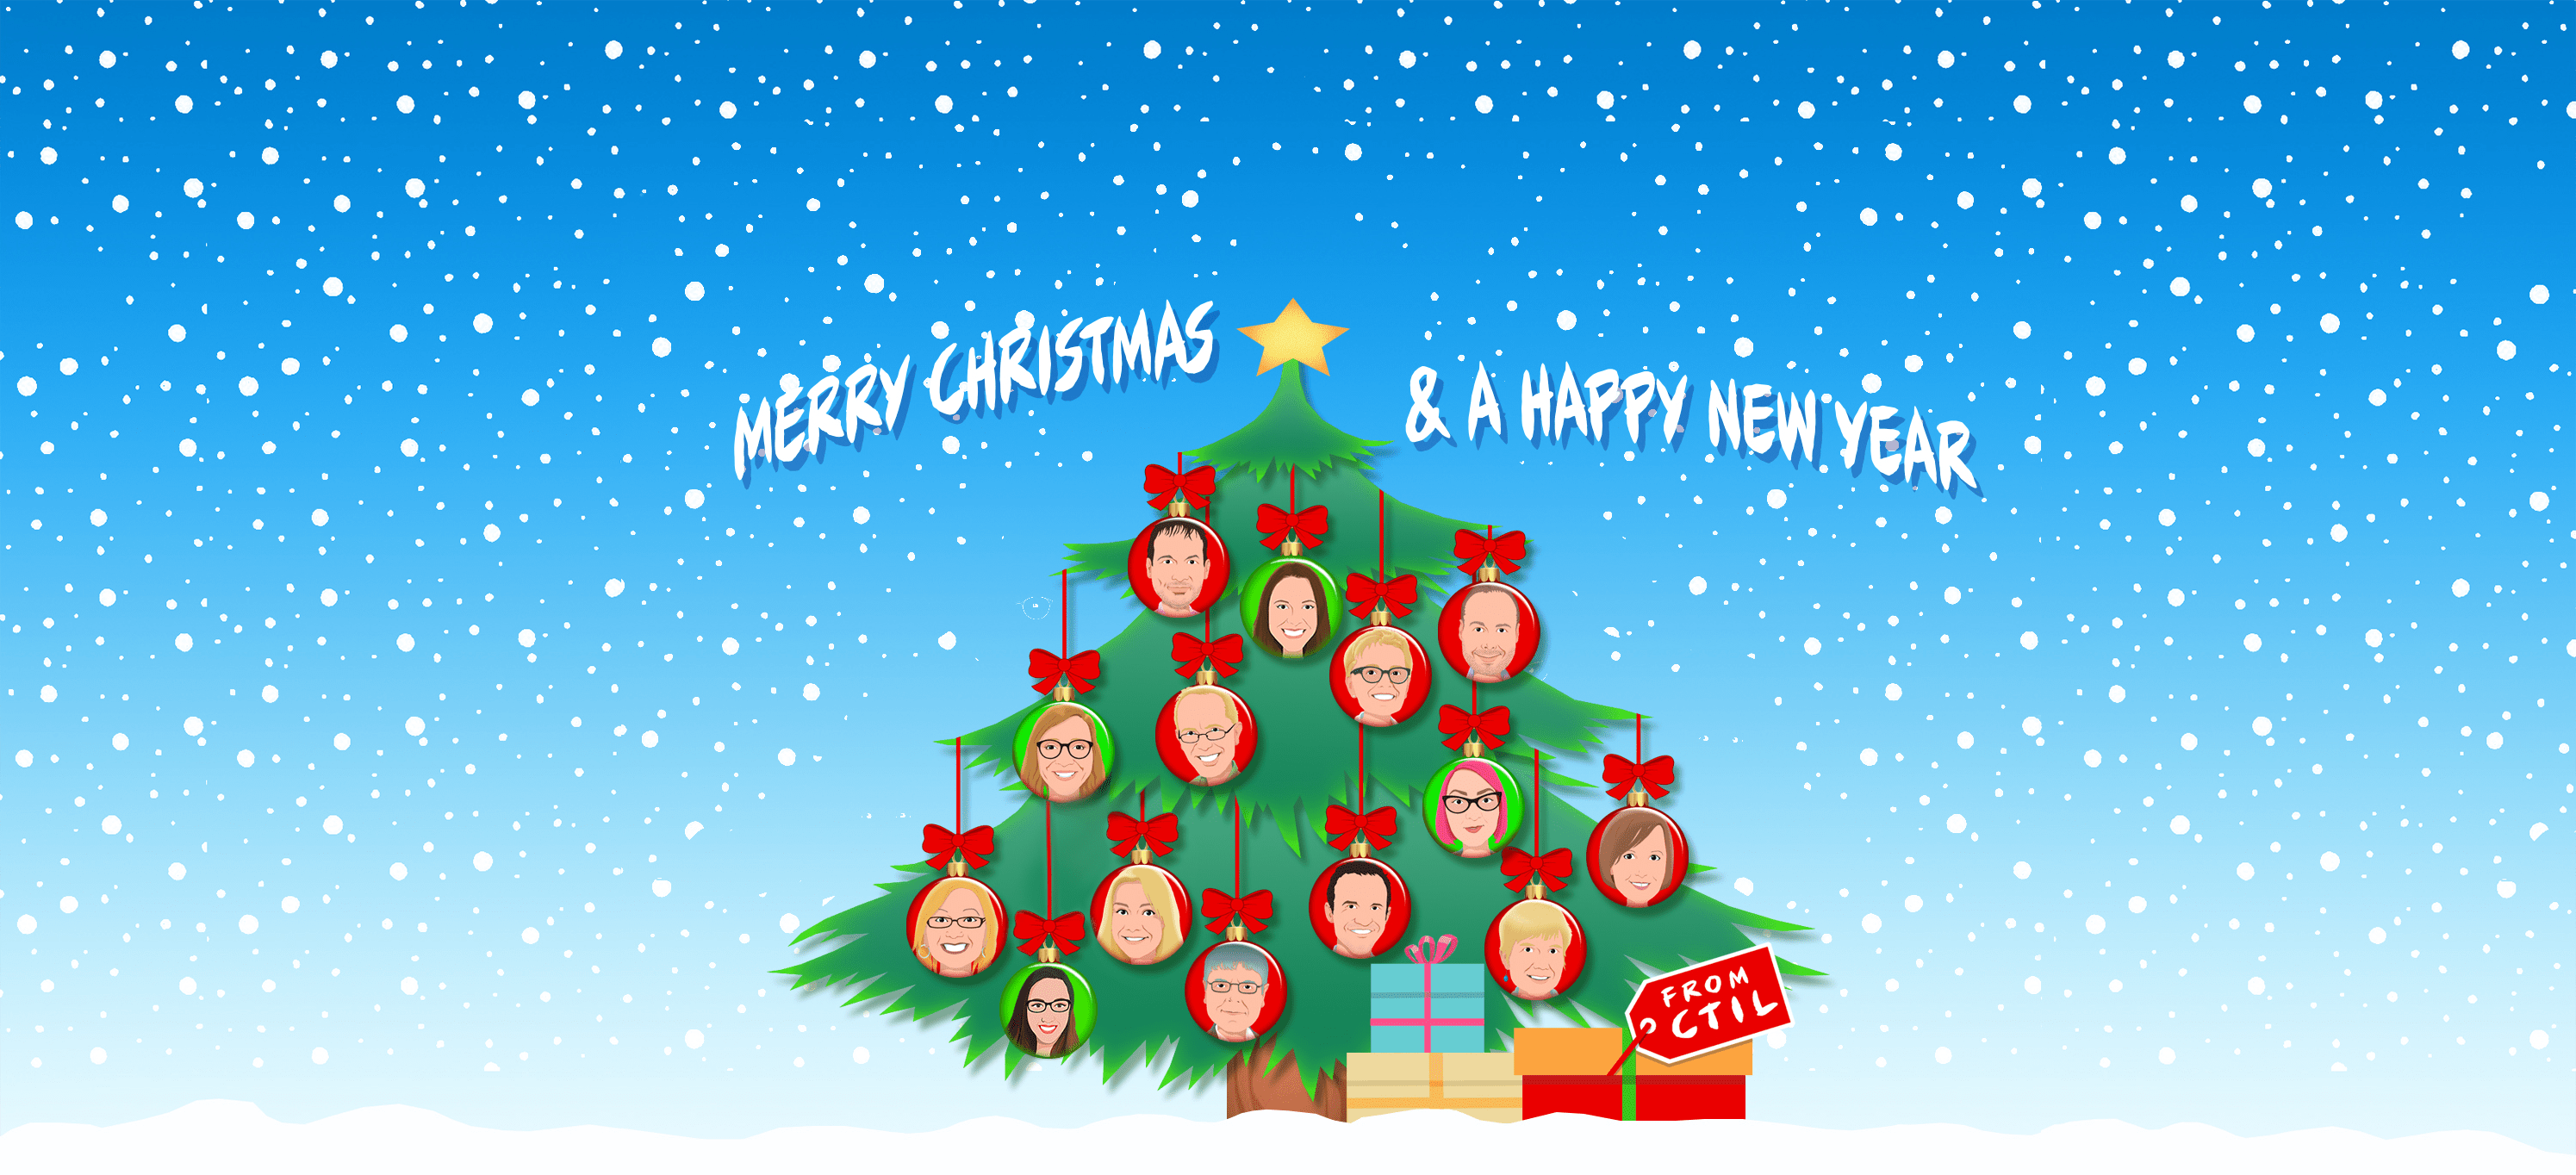 Christmas tree decorated with CTIL team baubles.  Merry Christmas & a Happy New Year.